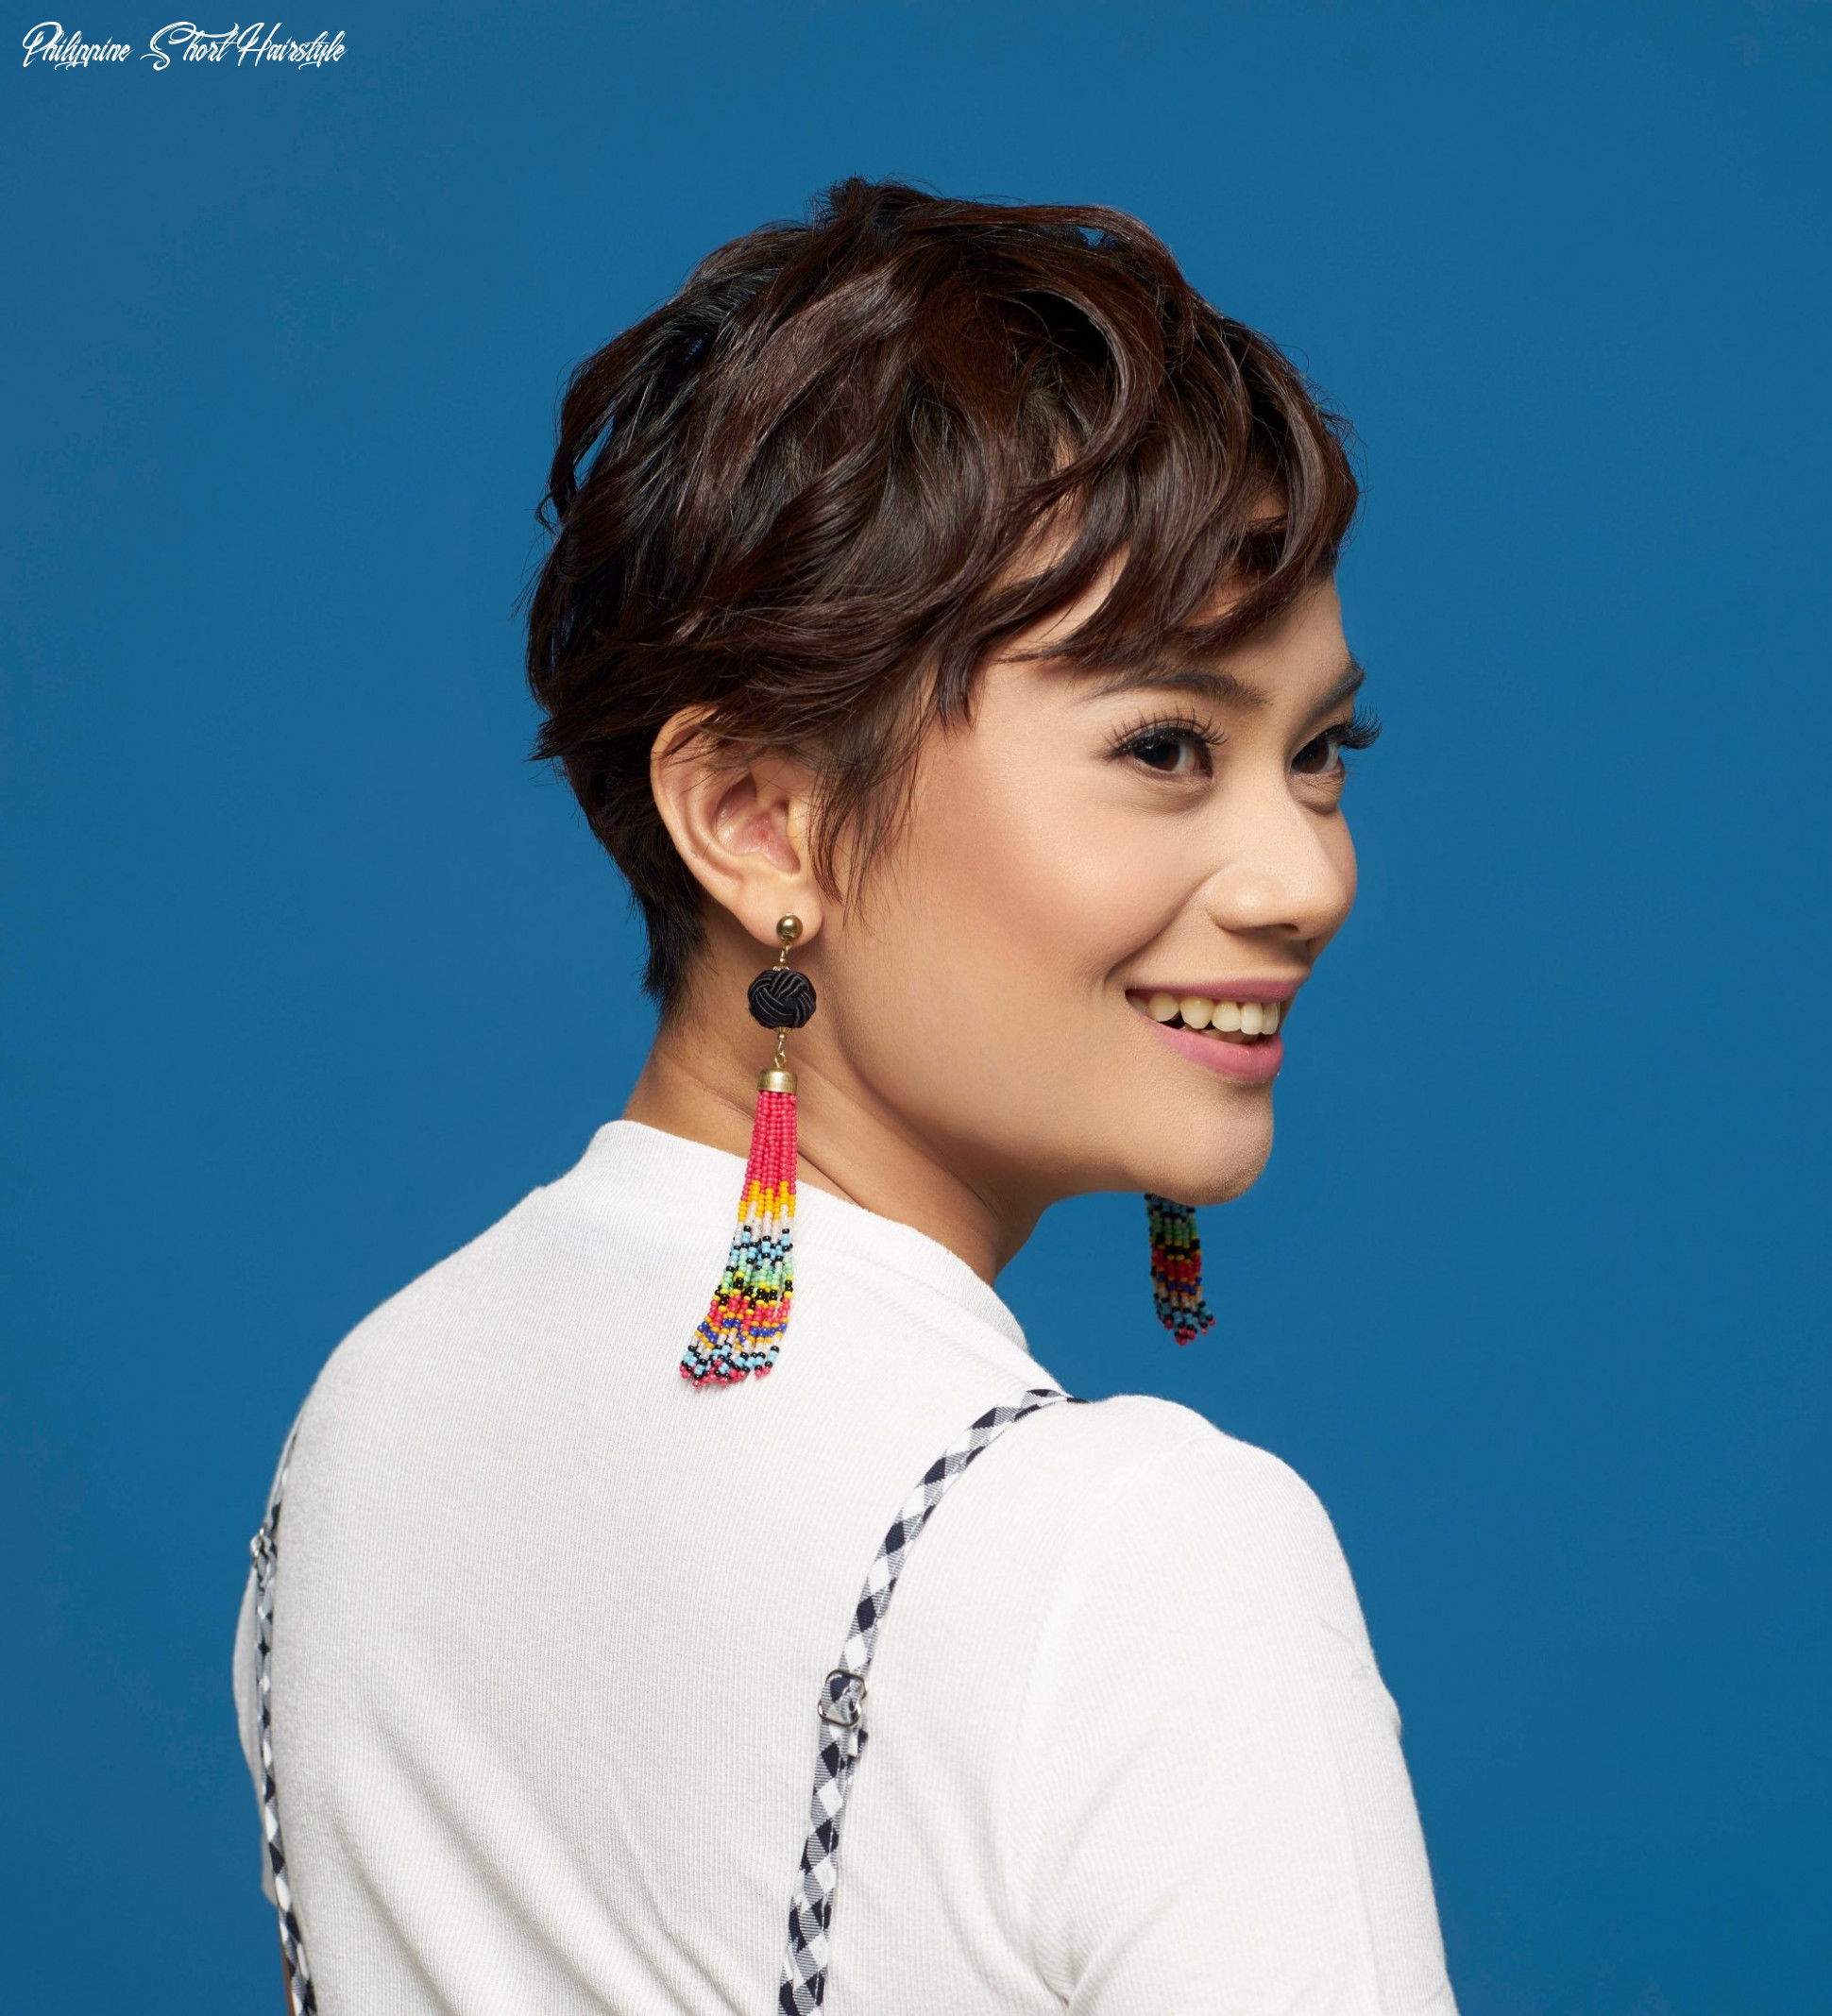 11 Best Short Hairstyles for Pinays   All Things Hair PH